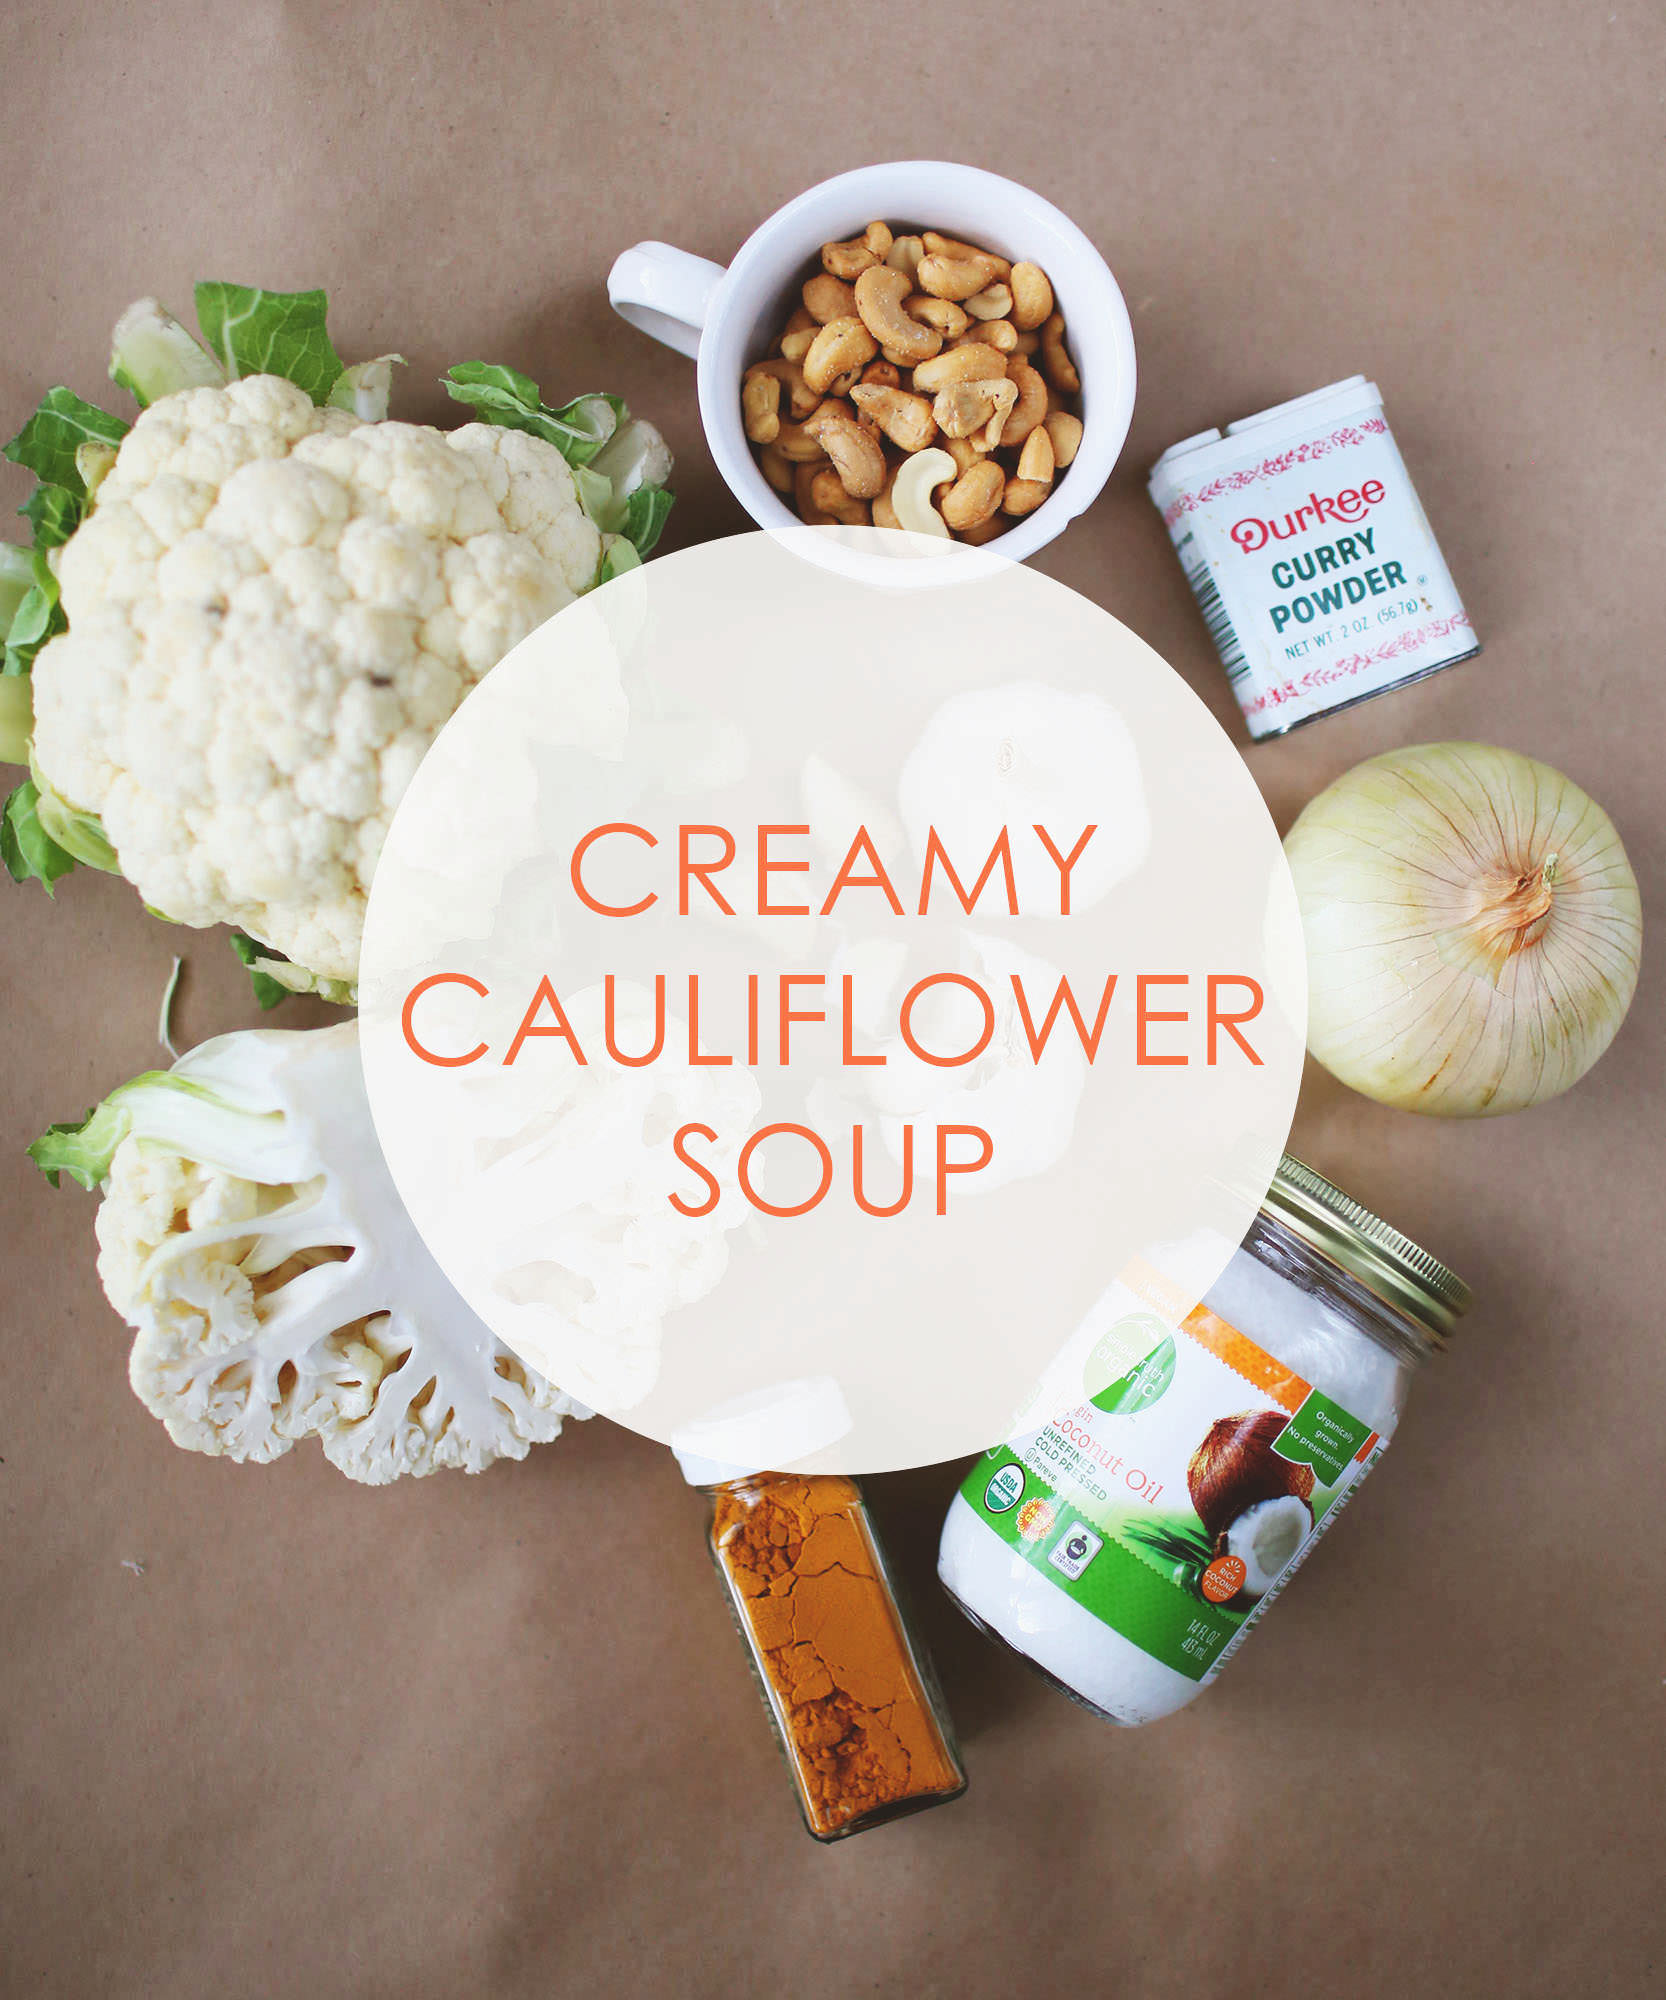 Creamy cauliflower soup for a delicious detox dish. via Lily & Val Living